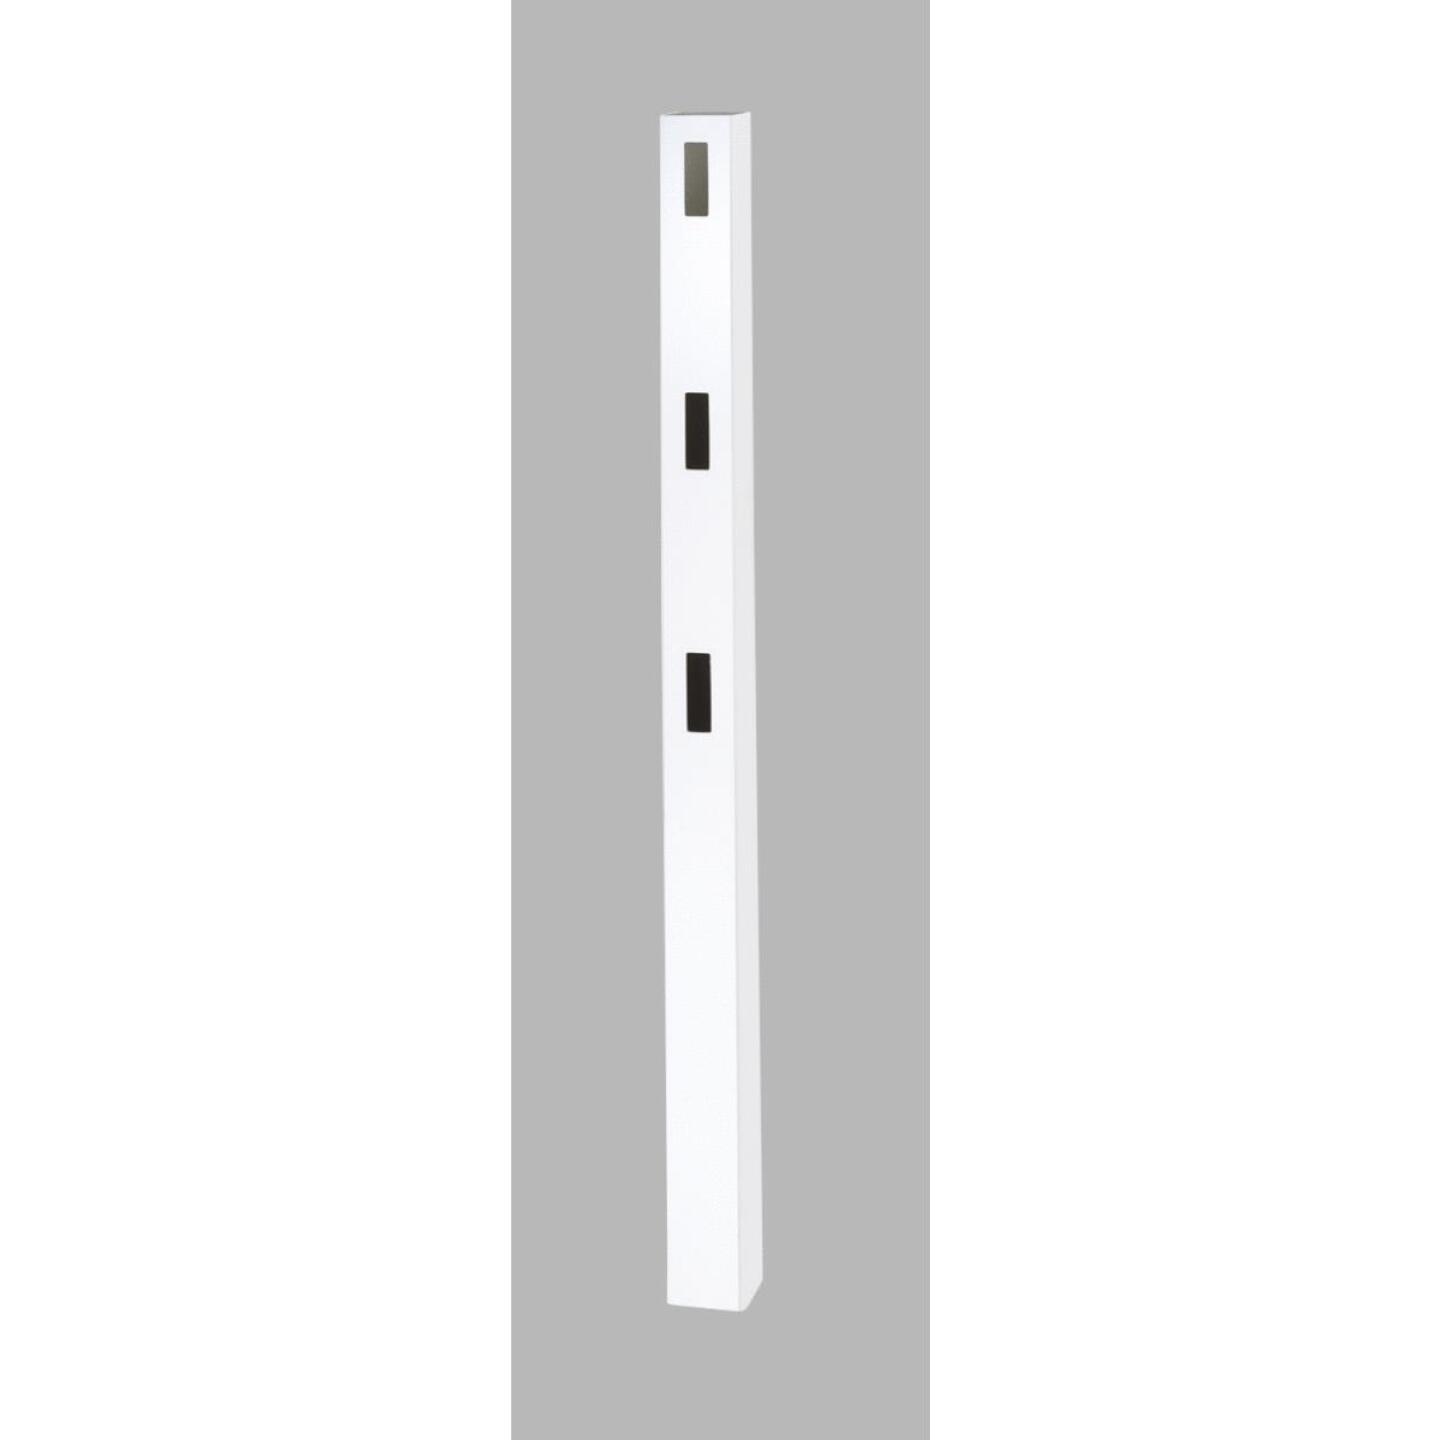 Outdoor Essentials 5 In. x 5 In. x 84 In. White End 3-Rail Fence Vinyl Post Image 1